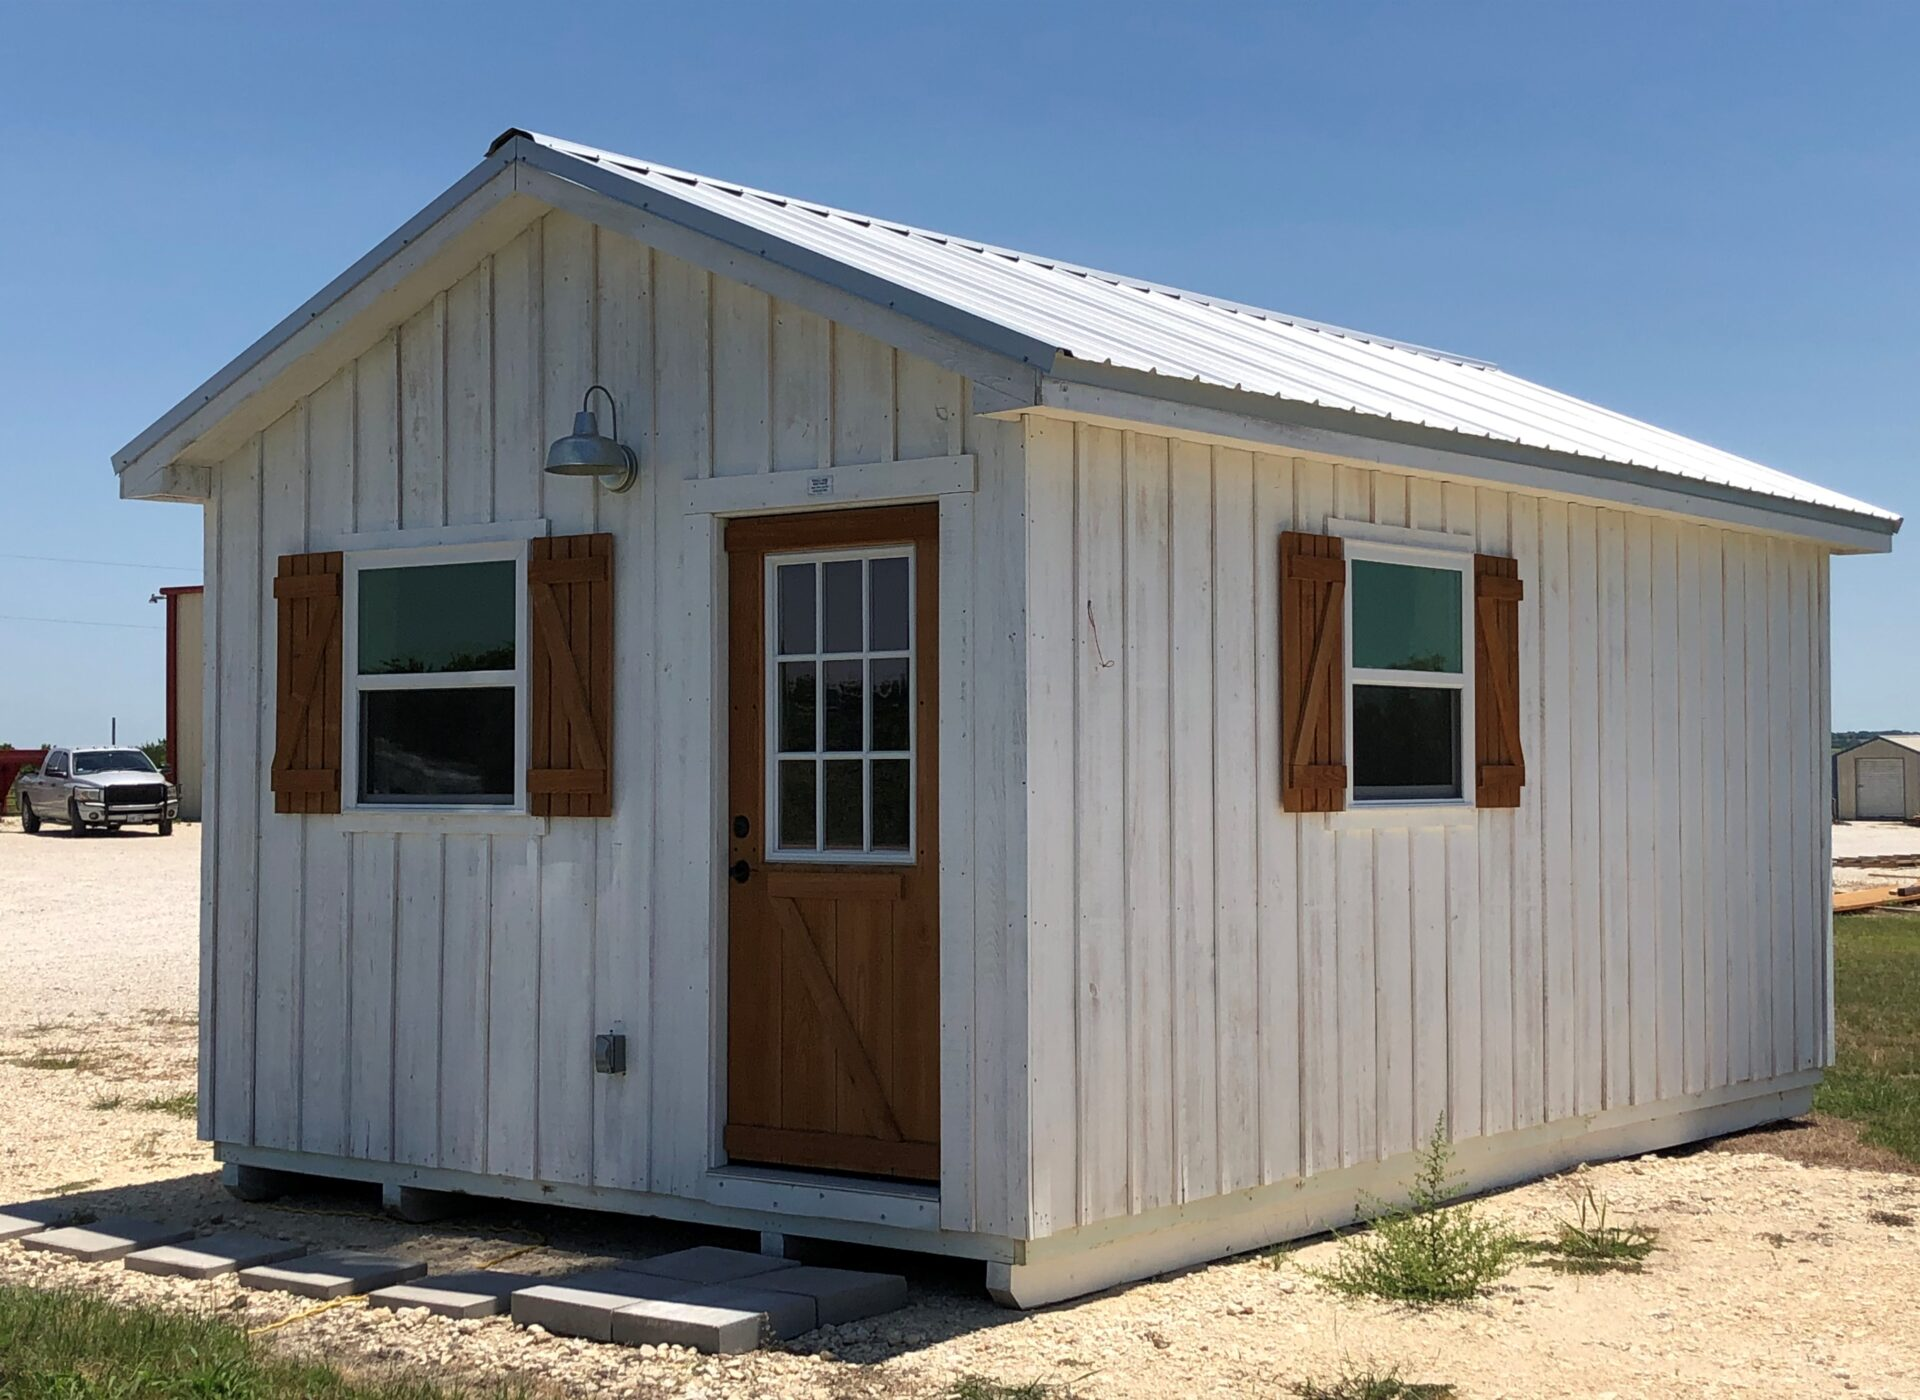 Portable Barns, Run-In Sheds & Cabins in Texas